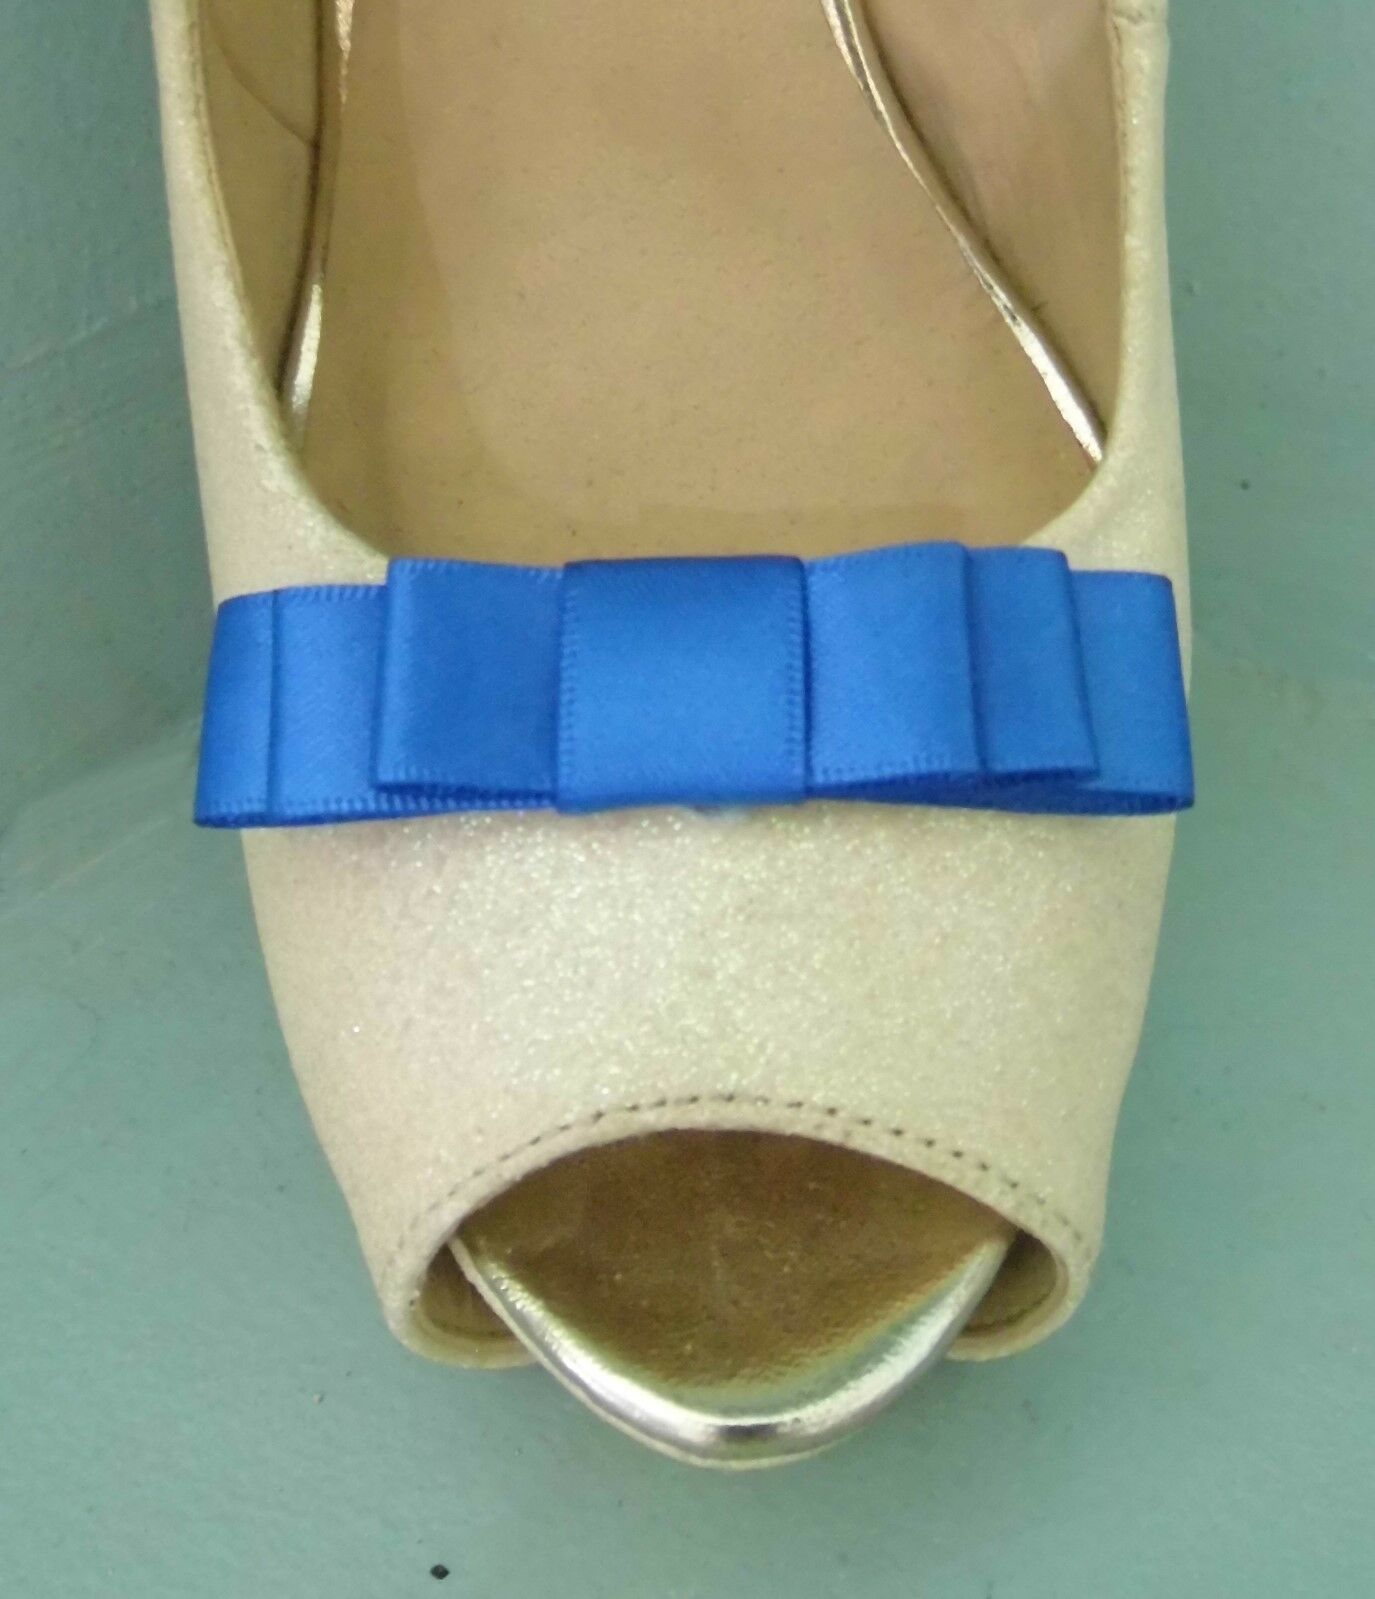 2 Small Royal Blue Triple Bow Clips for Shoes - other colours on request